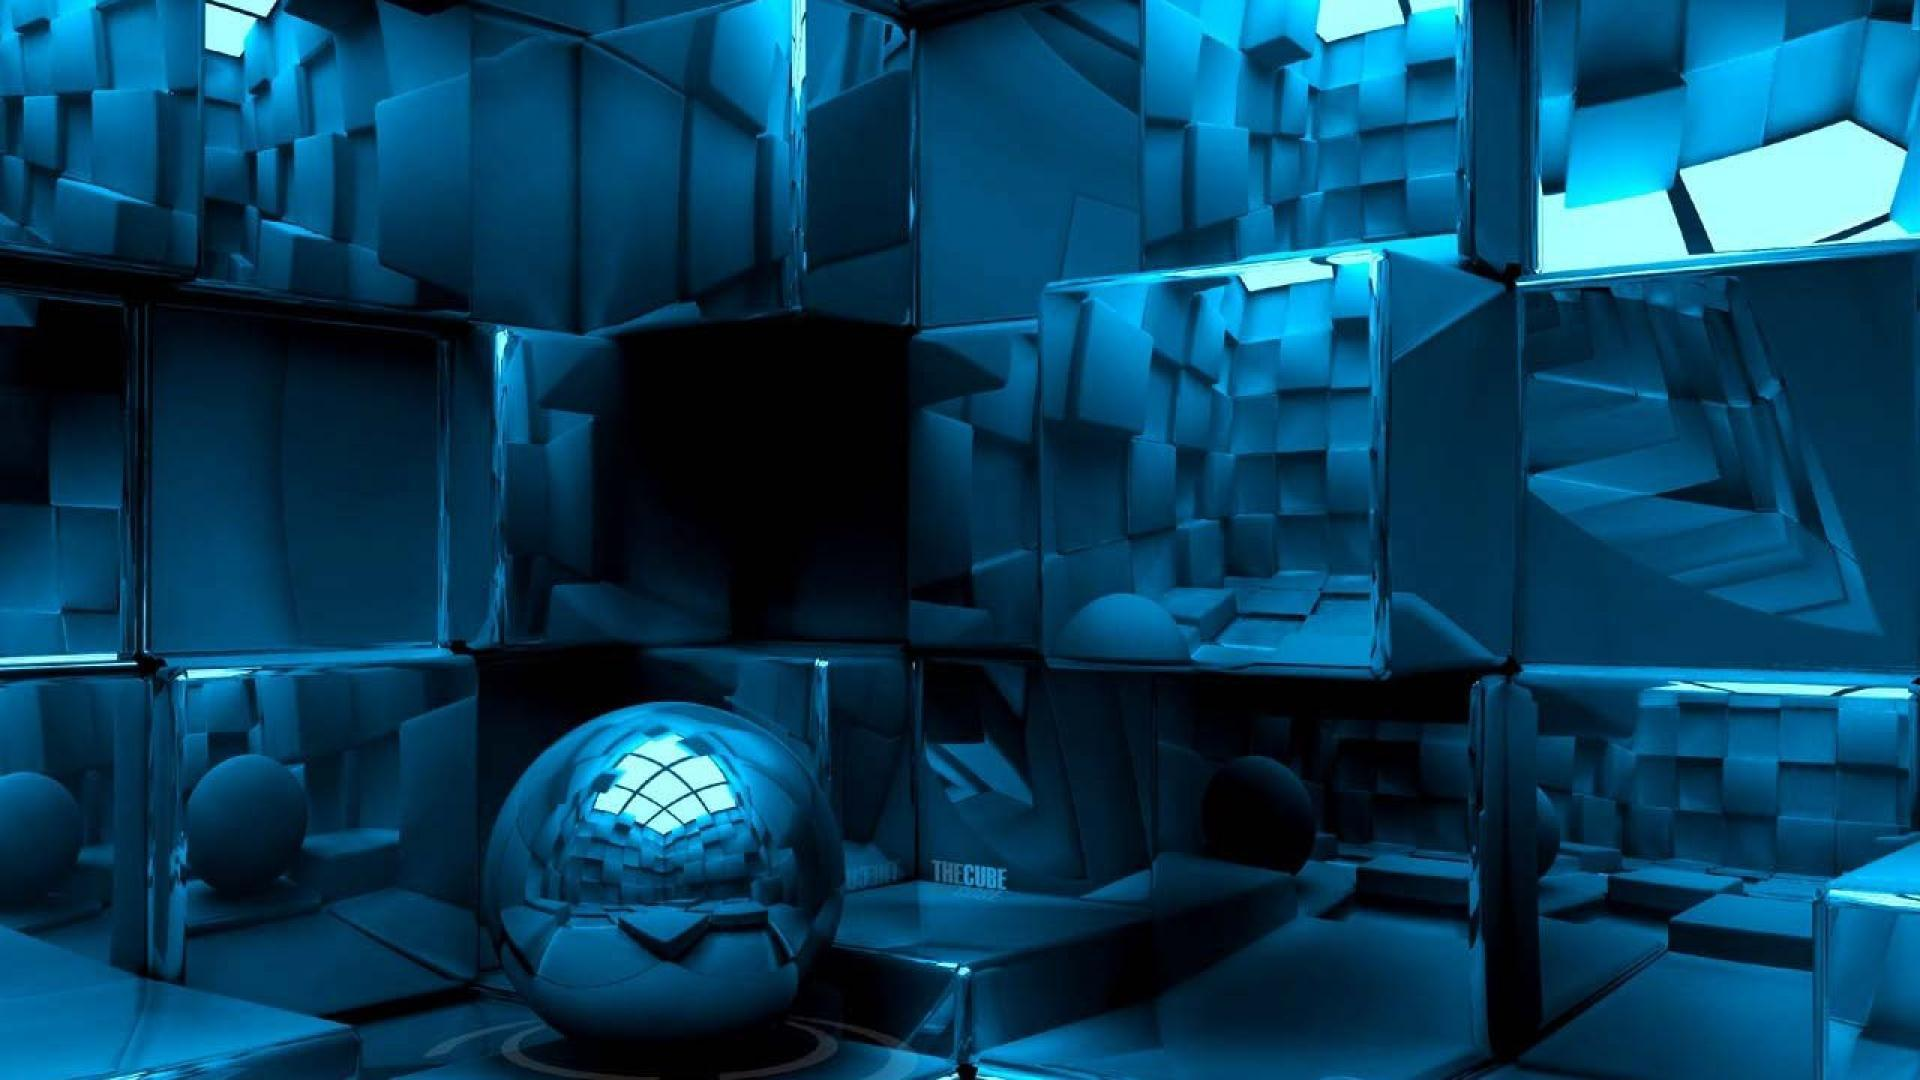 3D Cube and Sphere HD Wallpapers